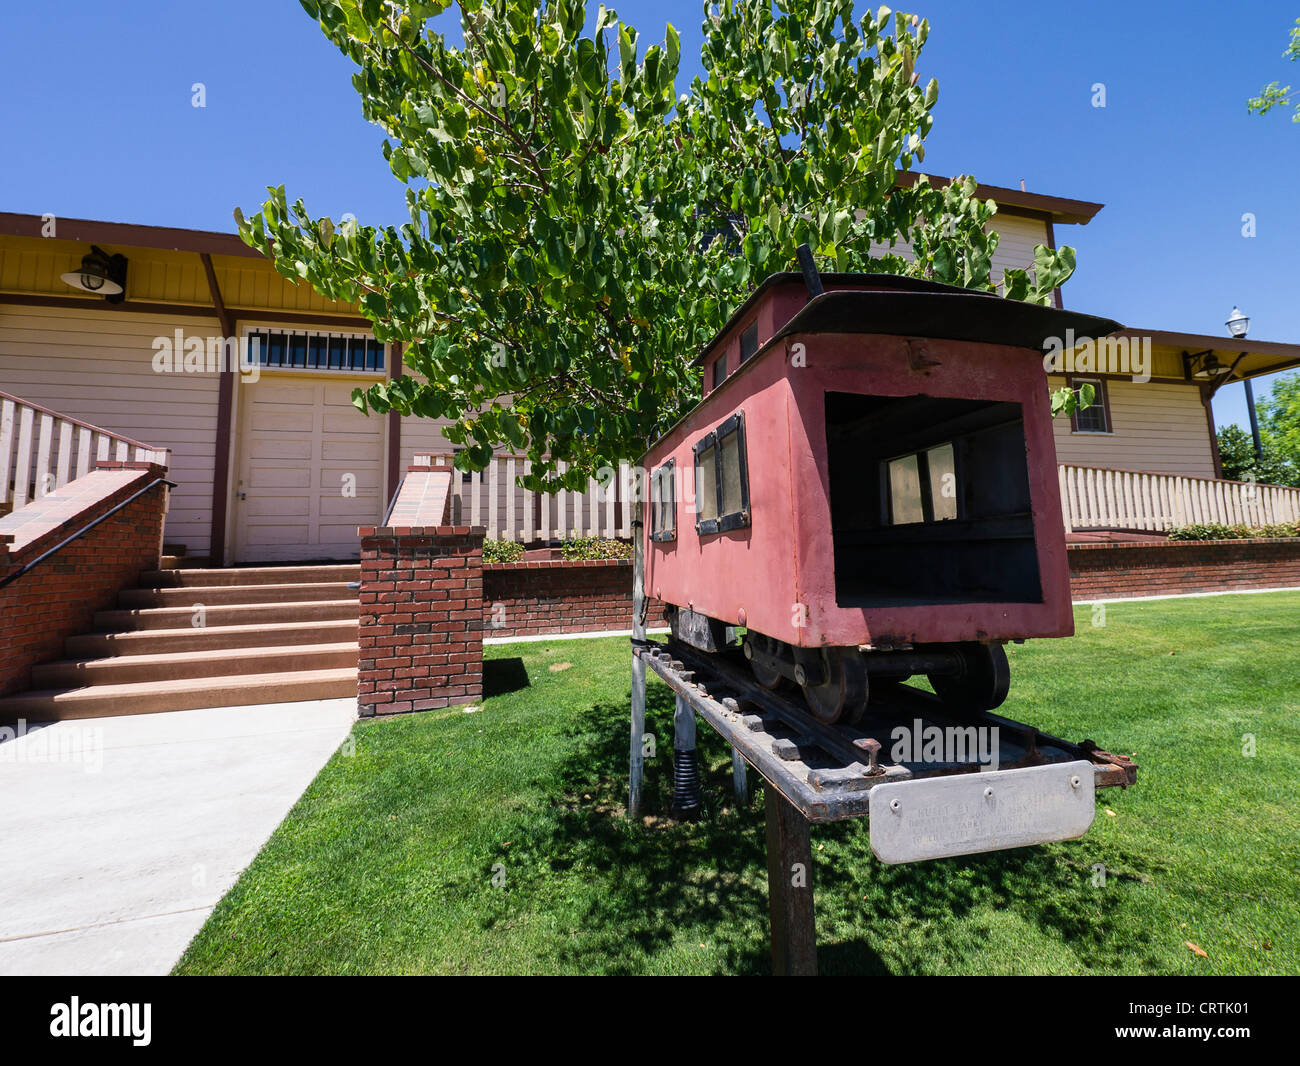 A little red model caboose serves as the mailbox for the historic train station in Lemoore, California, USA. - Stock Image